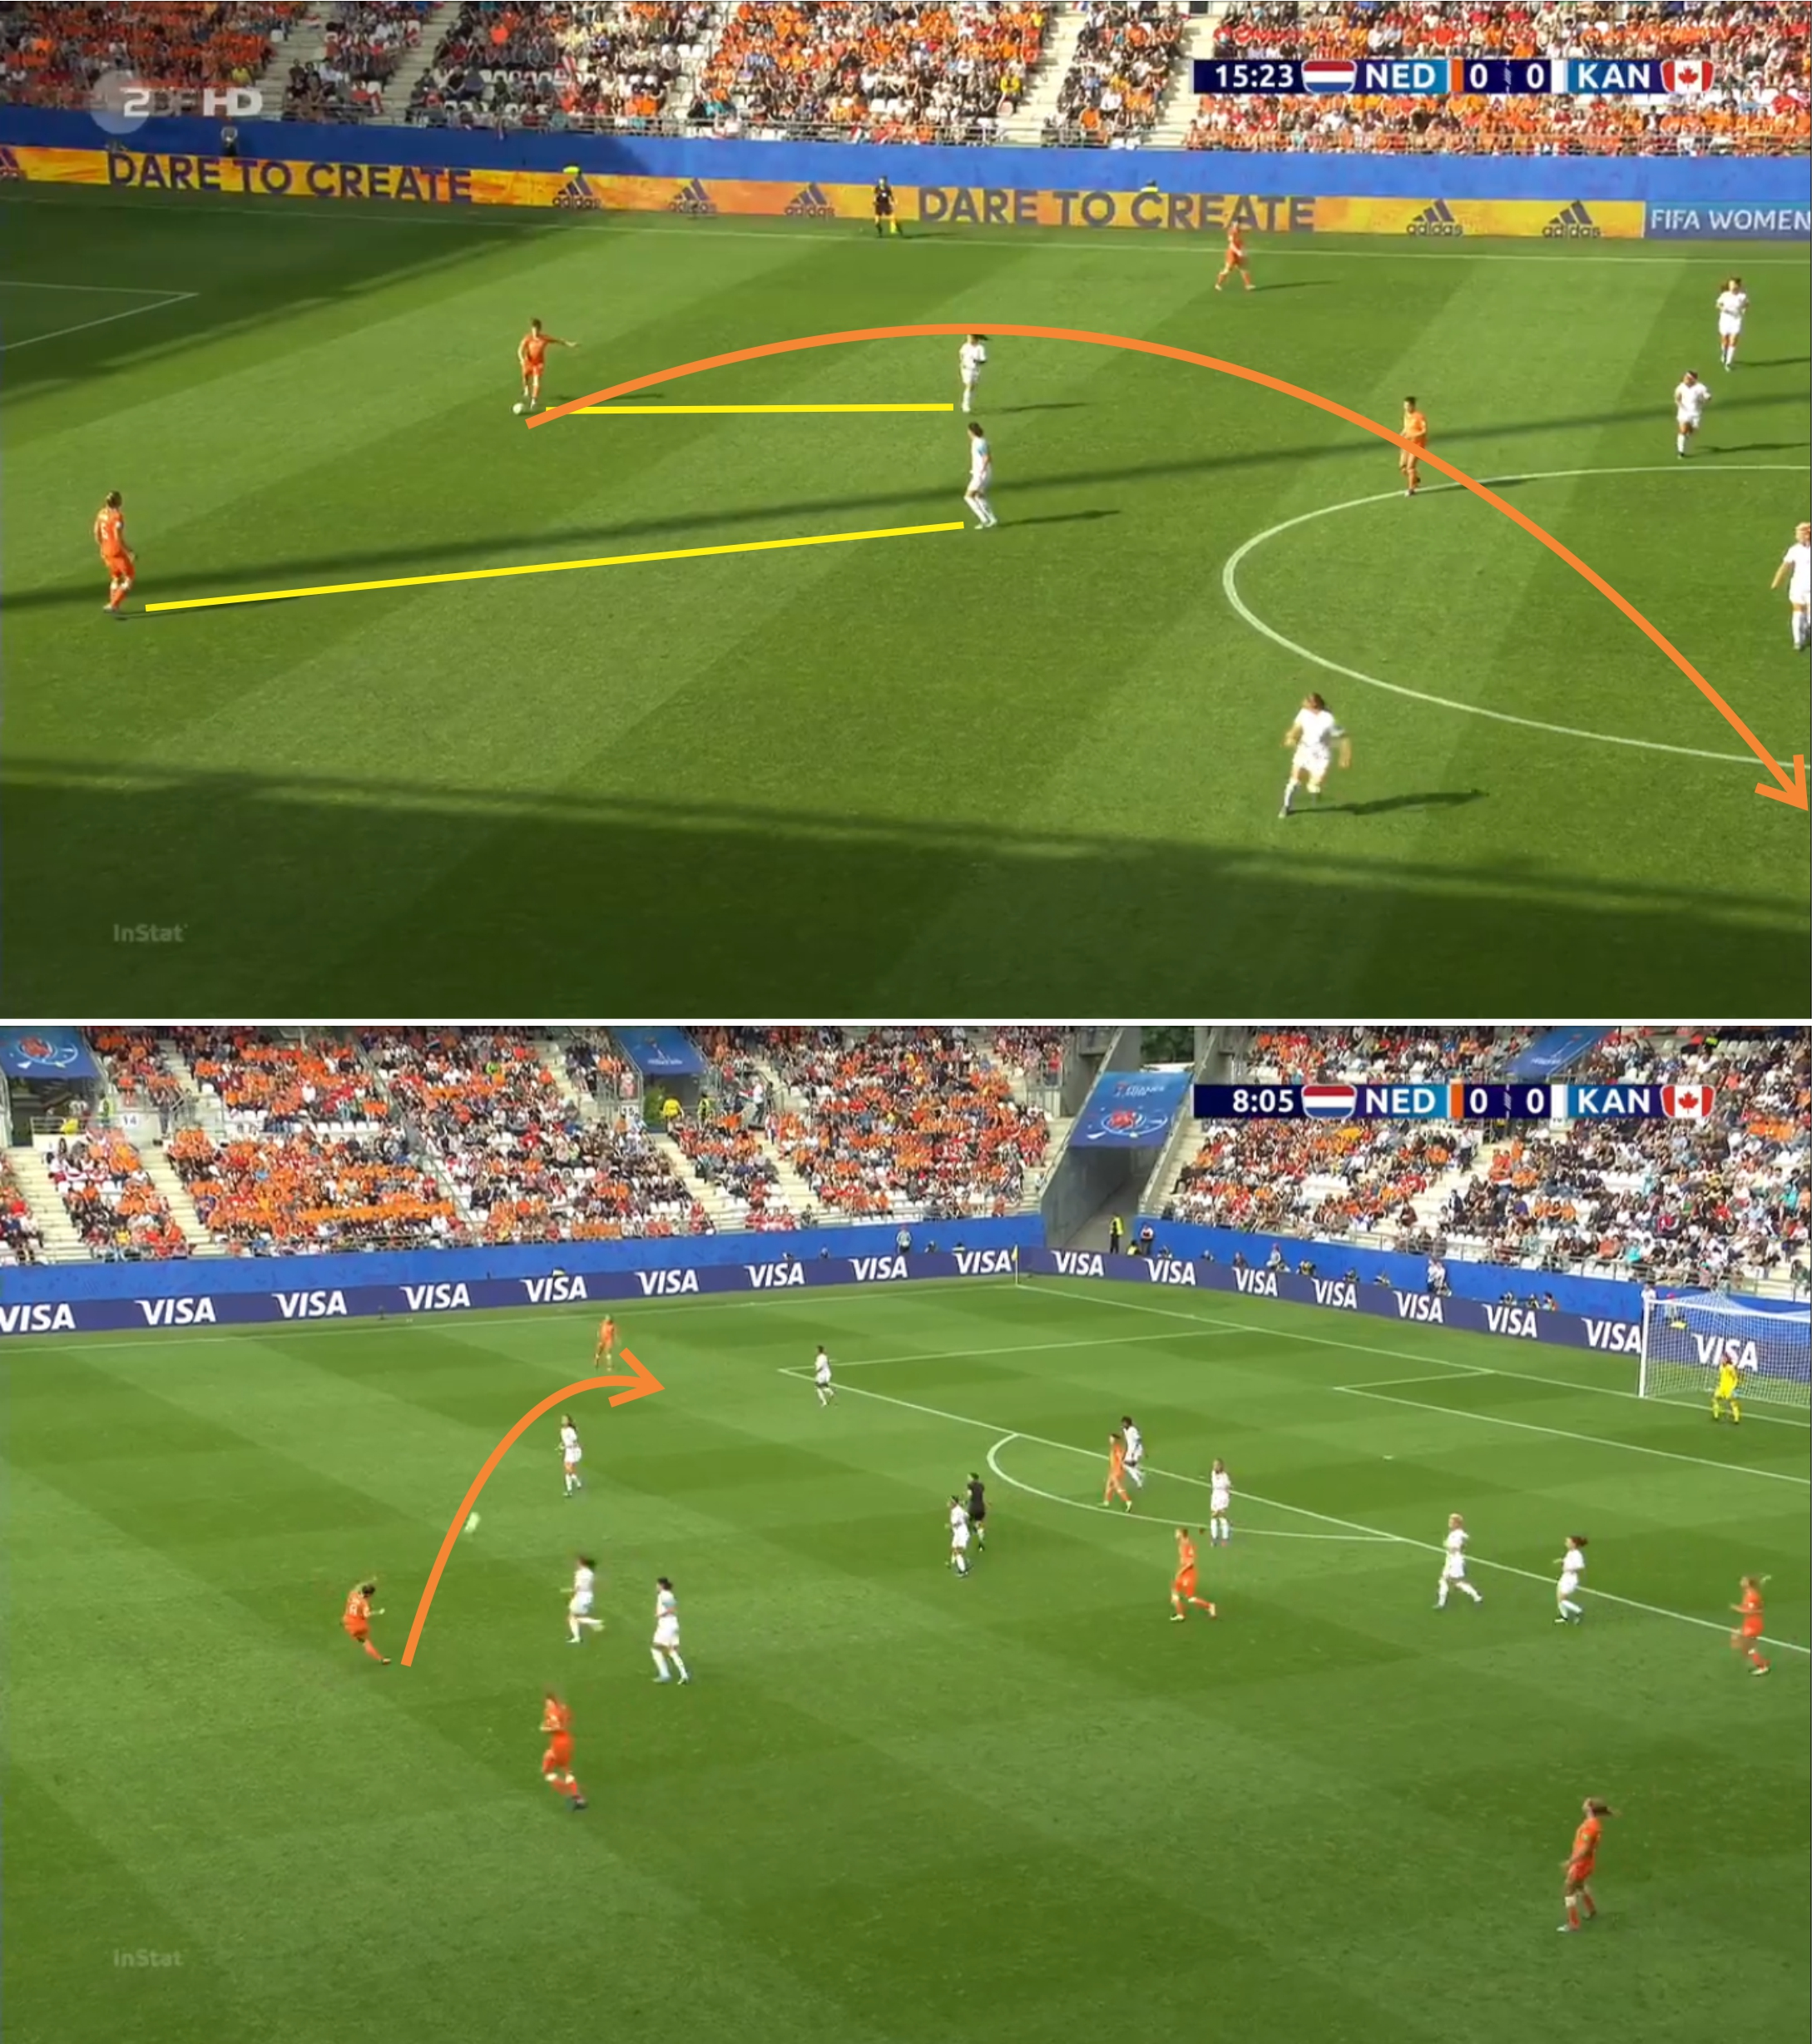 FIFA Women's World Cup 2019 Tactical Preview: Netherlands vs Japan